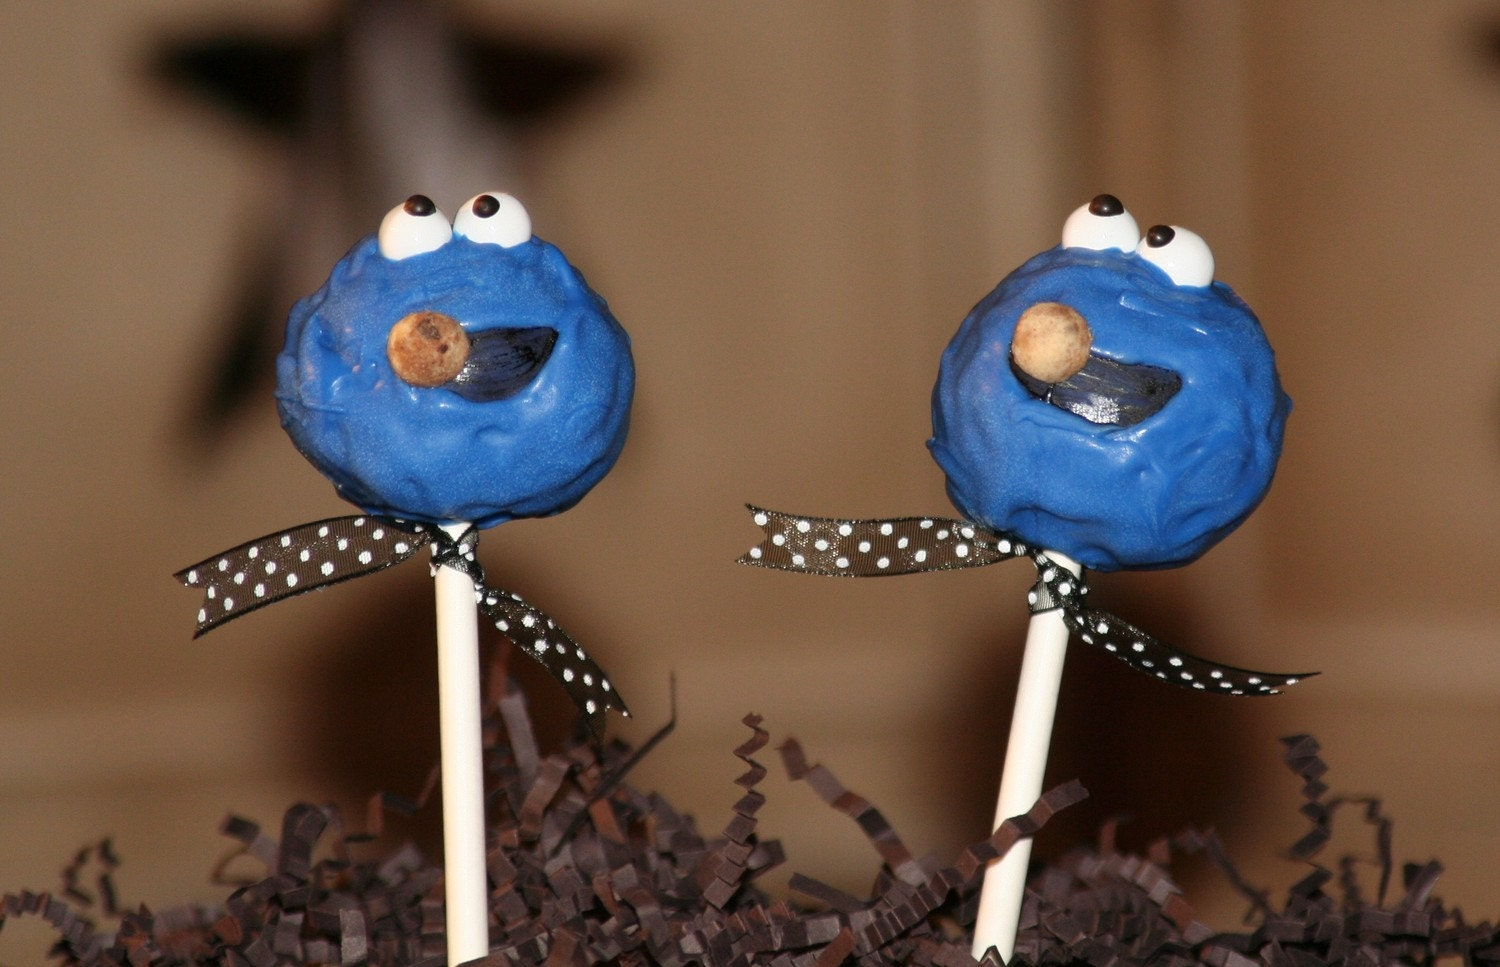 Mom's Killer Cakes & Cookies Cookie Monster Sesame Street Cake Pops